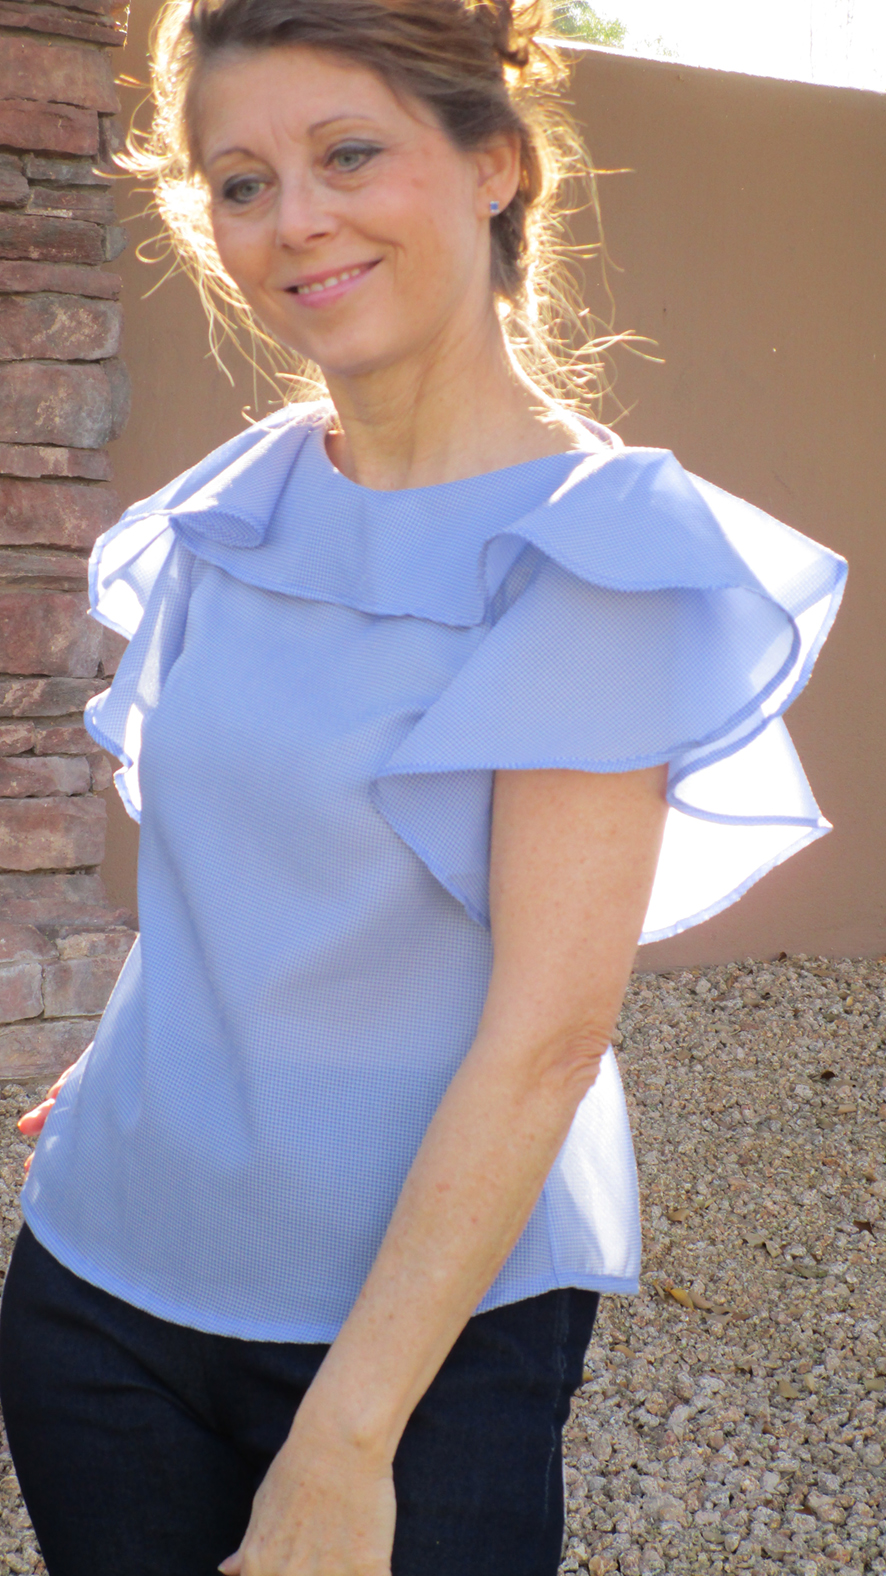 """Diane Cullum - """"When I saw the drawings of the Synthia, I loved the simplicity of the blouse with the circle type of ruffle. I really like how it drapes down the arms, creating a very different look. It's romantic and flirty, floaty and fun. Since I love sewing with woven fabric, and this blouse can be dressed up or worn casual."""""""